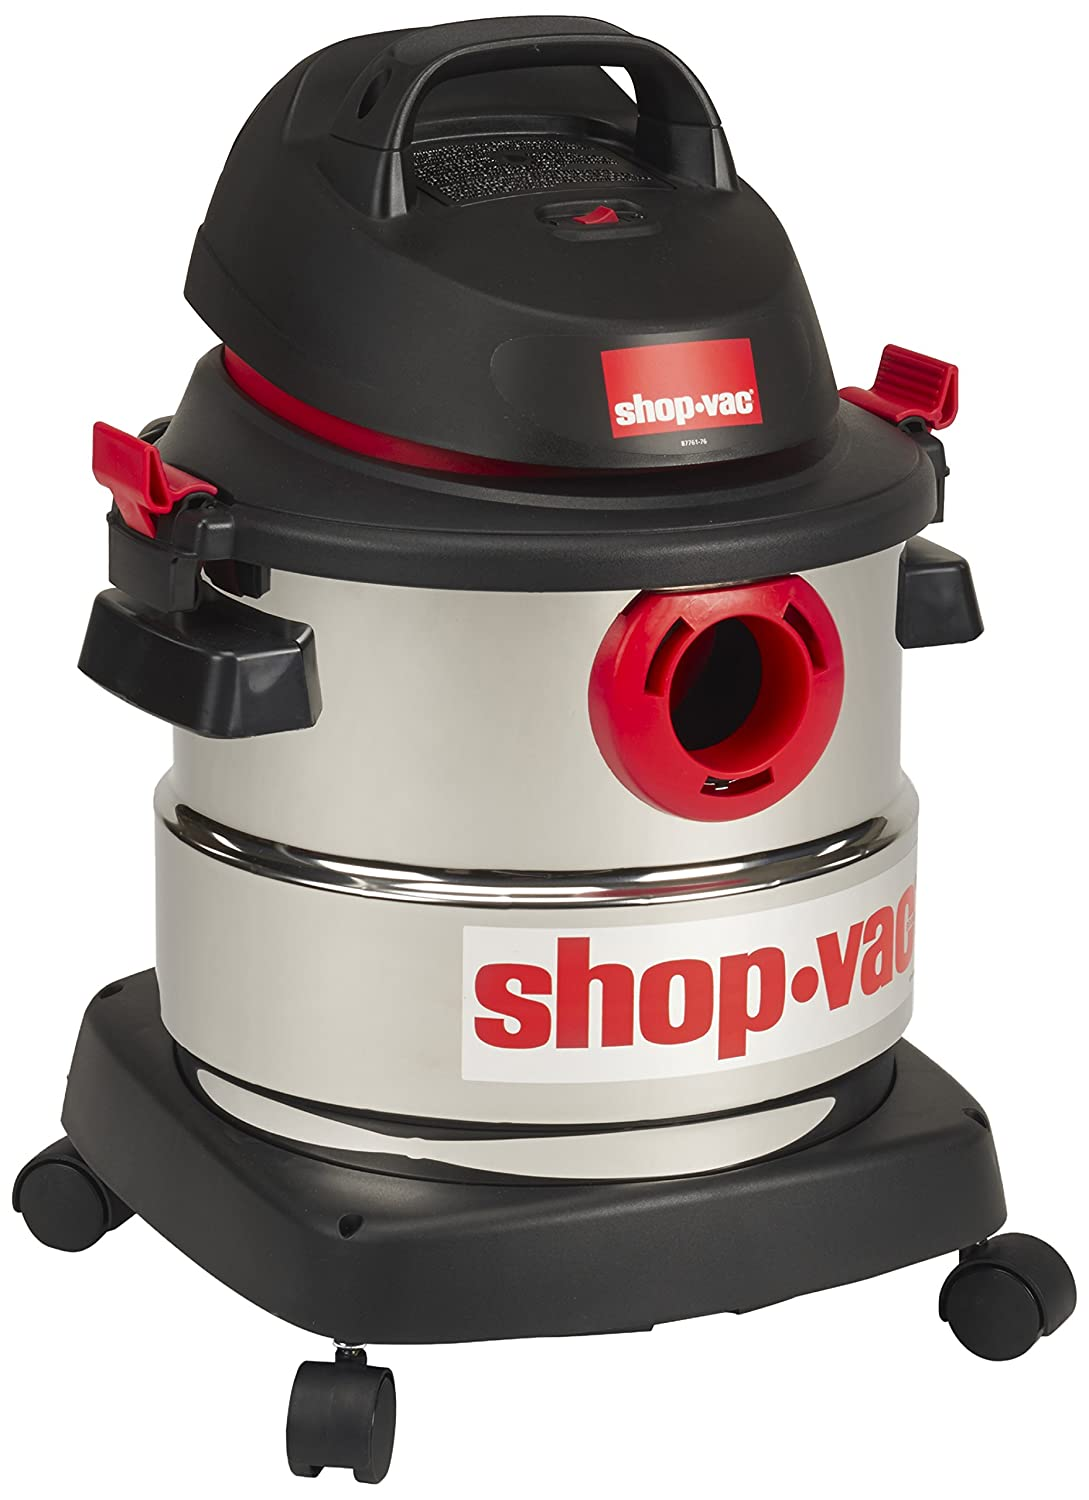 Amazon.com: Shop-Vac 5989300 5-Gallon 4.5 Peak HP Stainless Steel Wet Dry  Vacuum: Home Improvement